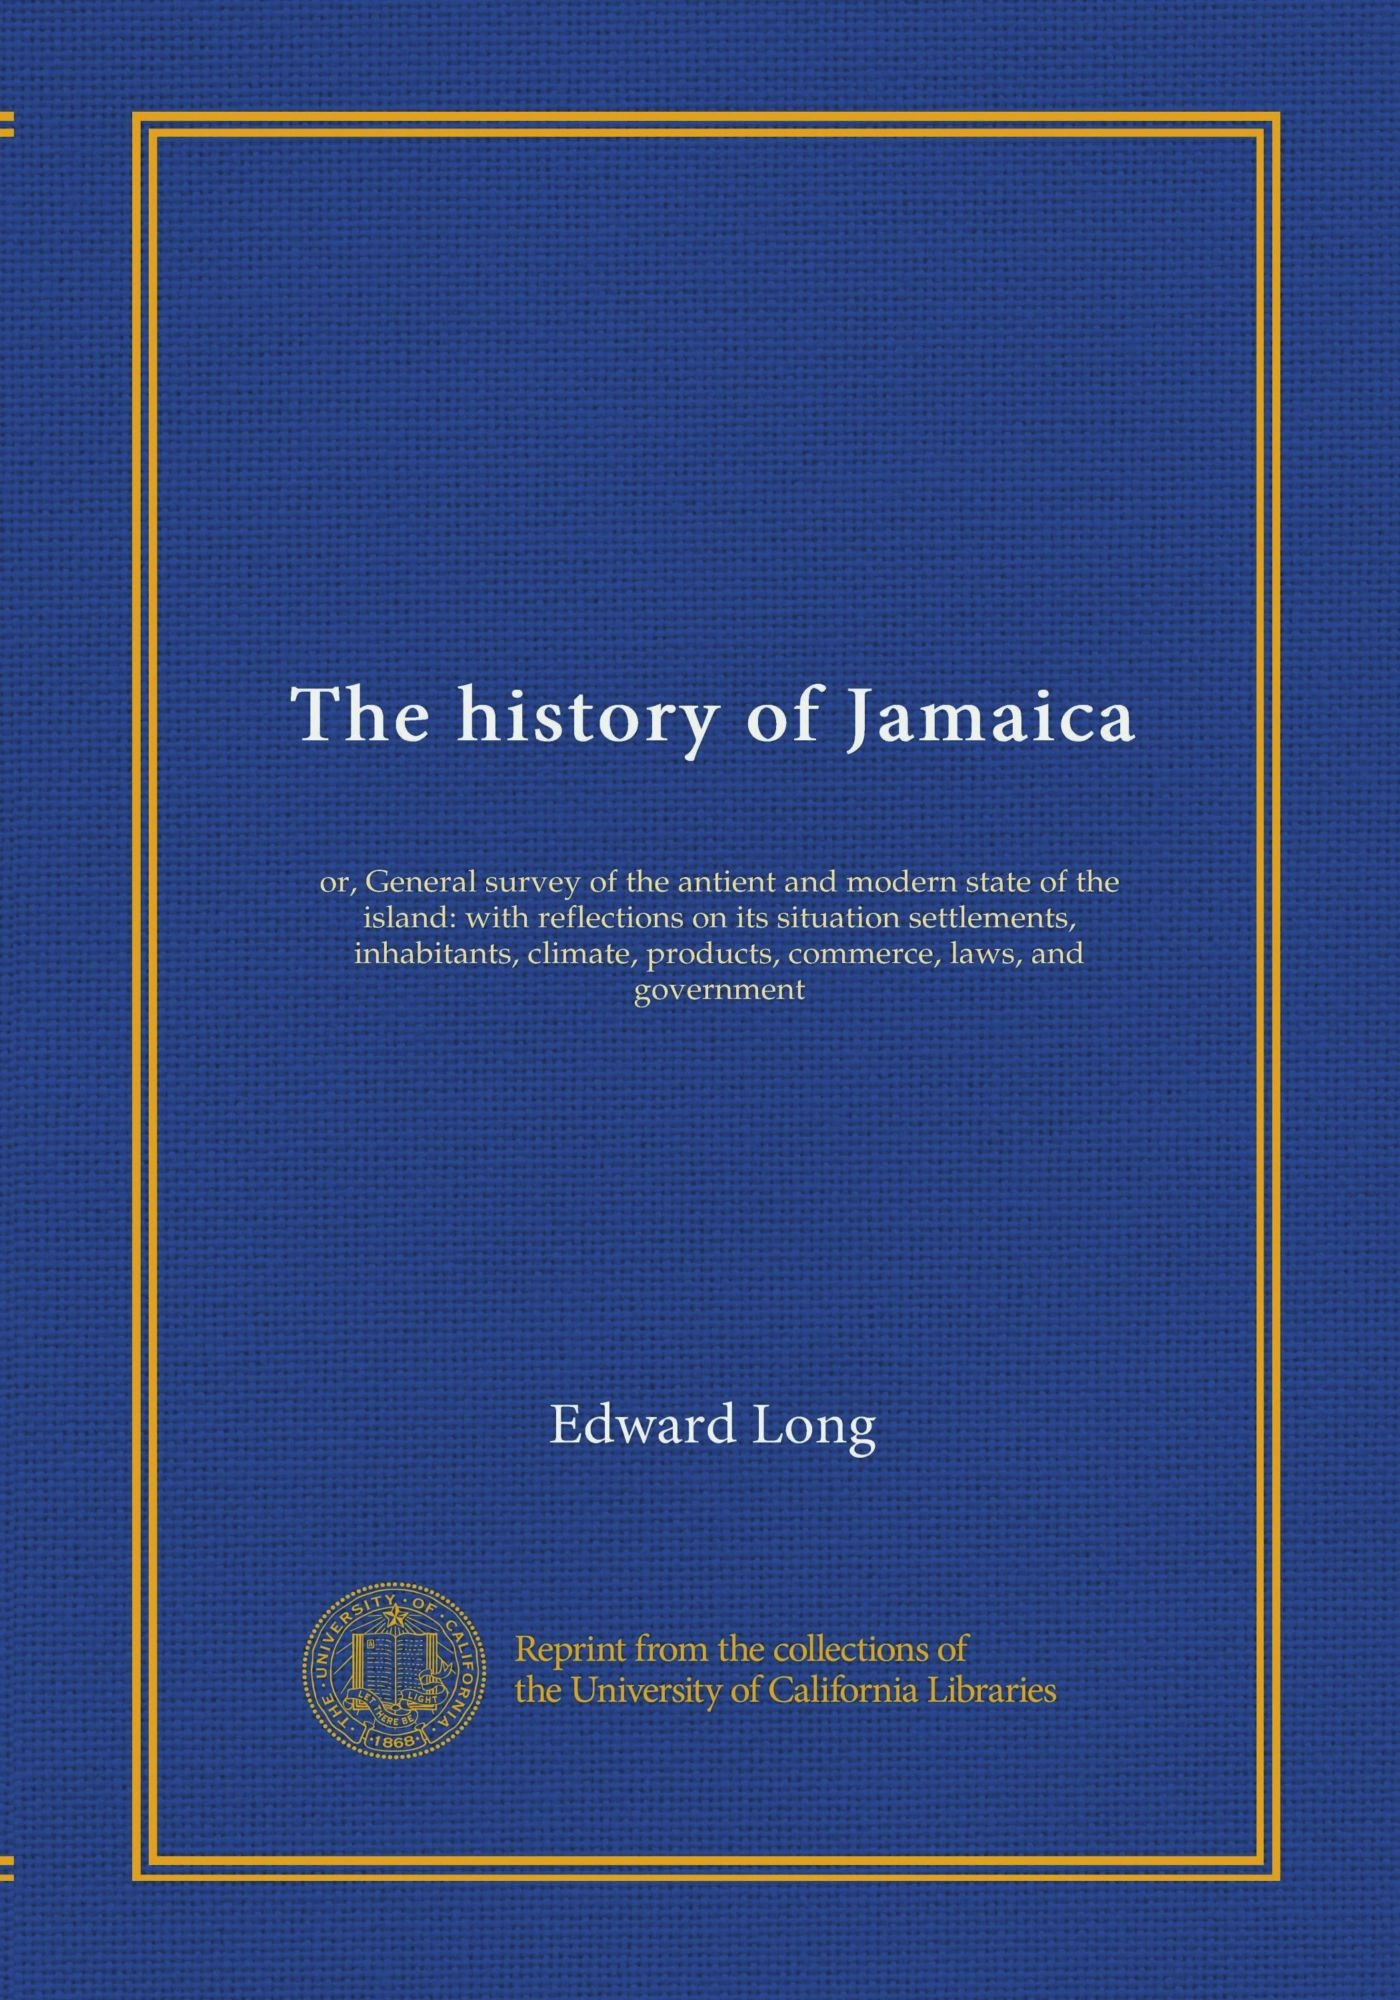 The history of Jamaica (v.3): or, General survey of the antient and modern state of the island: with reflections on its situation settlements, ... products, commerce, laws, and government